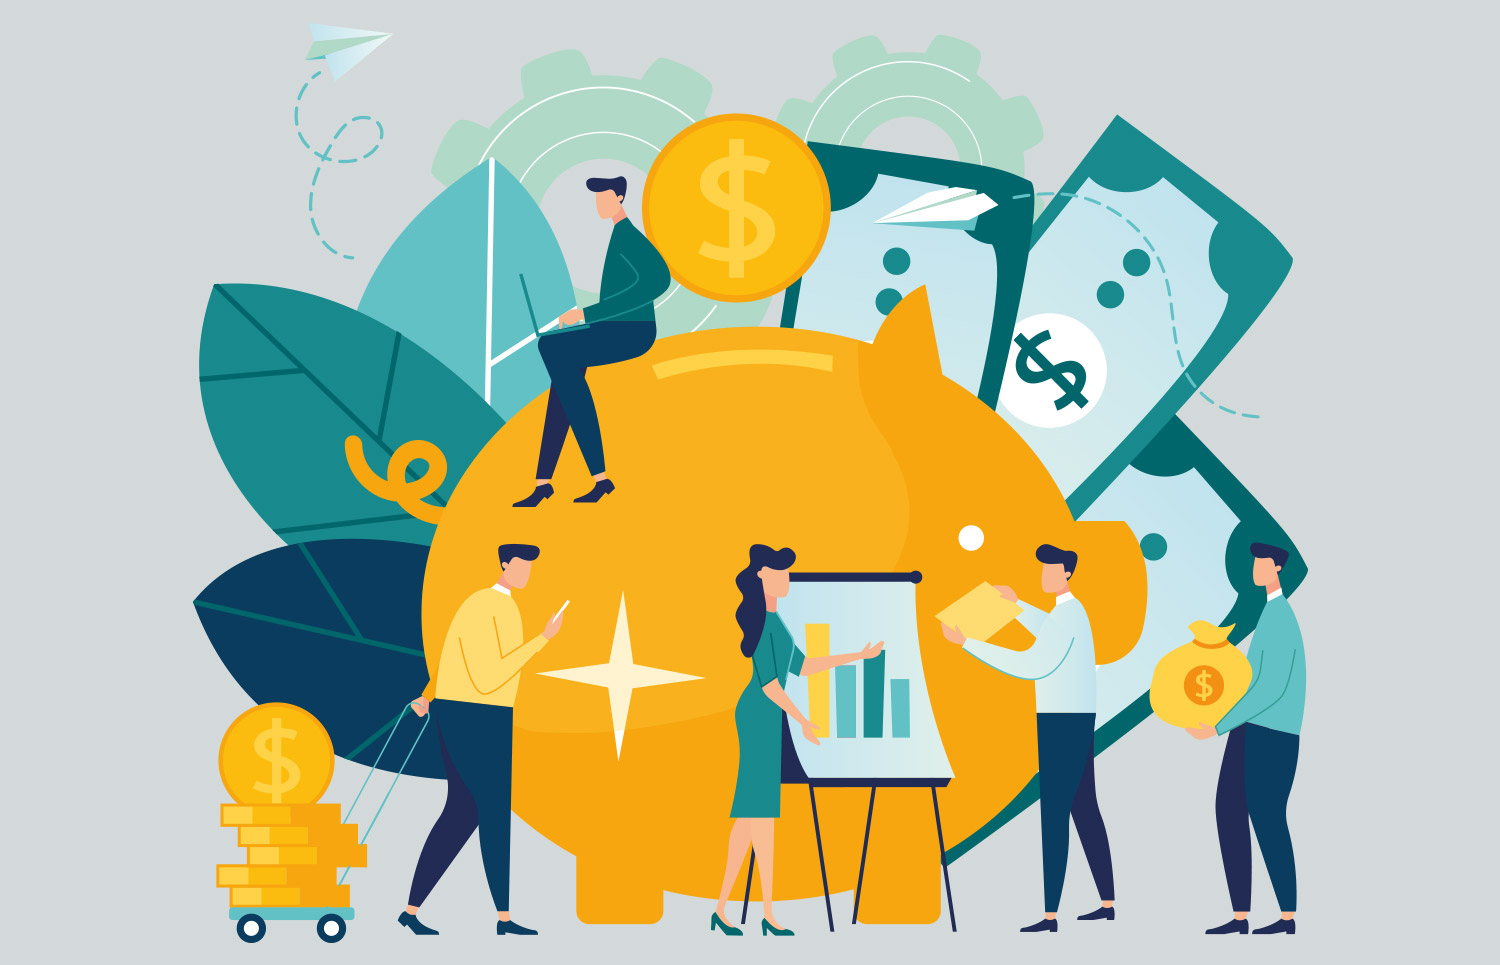 Vector Illustration of Business People Budgeting for Their Company